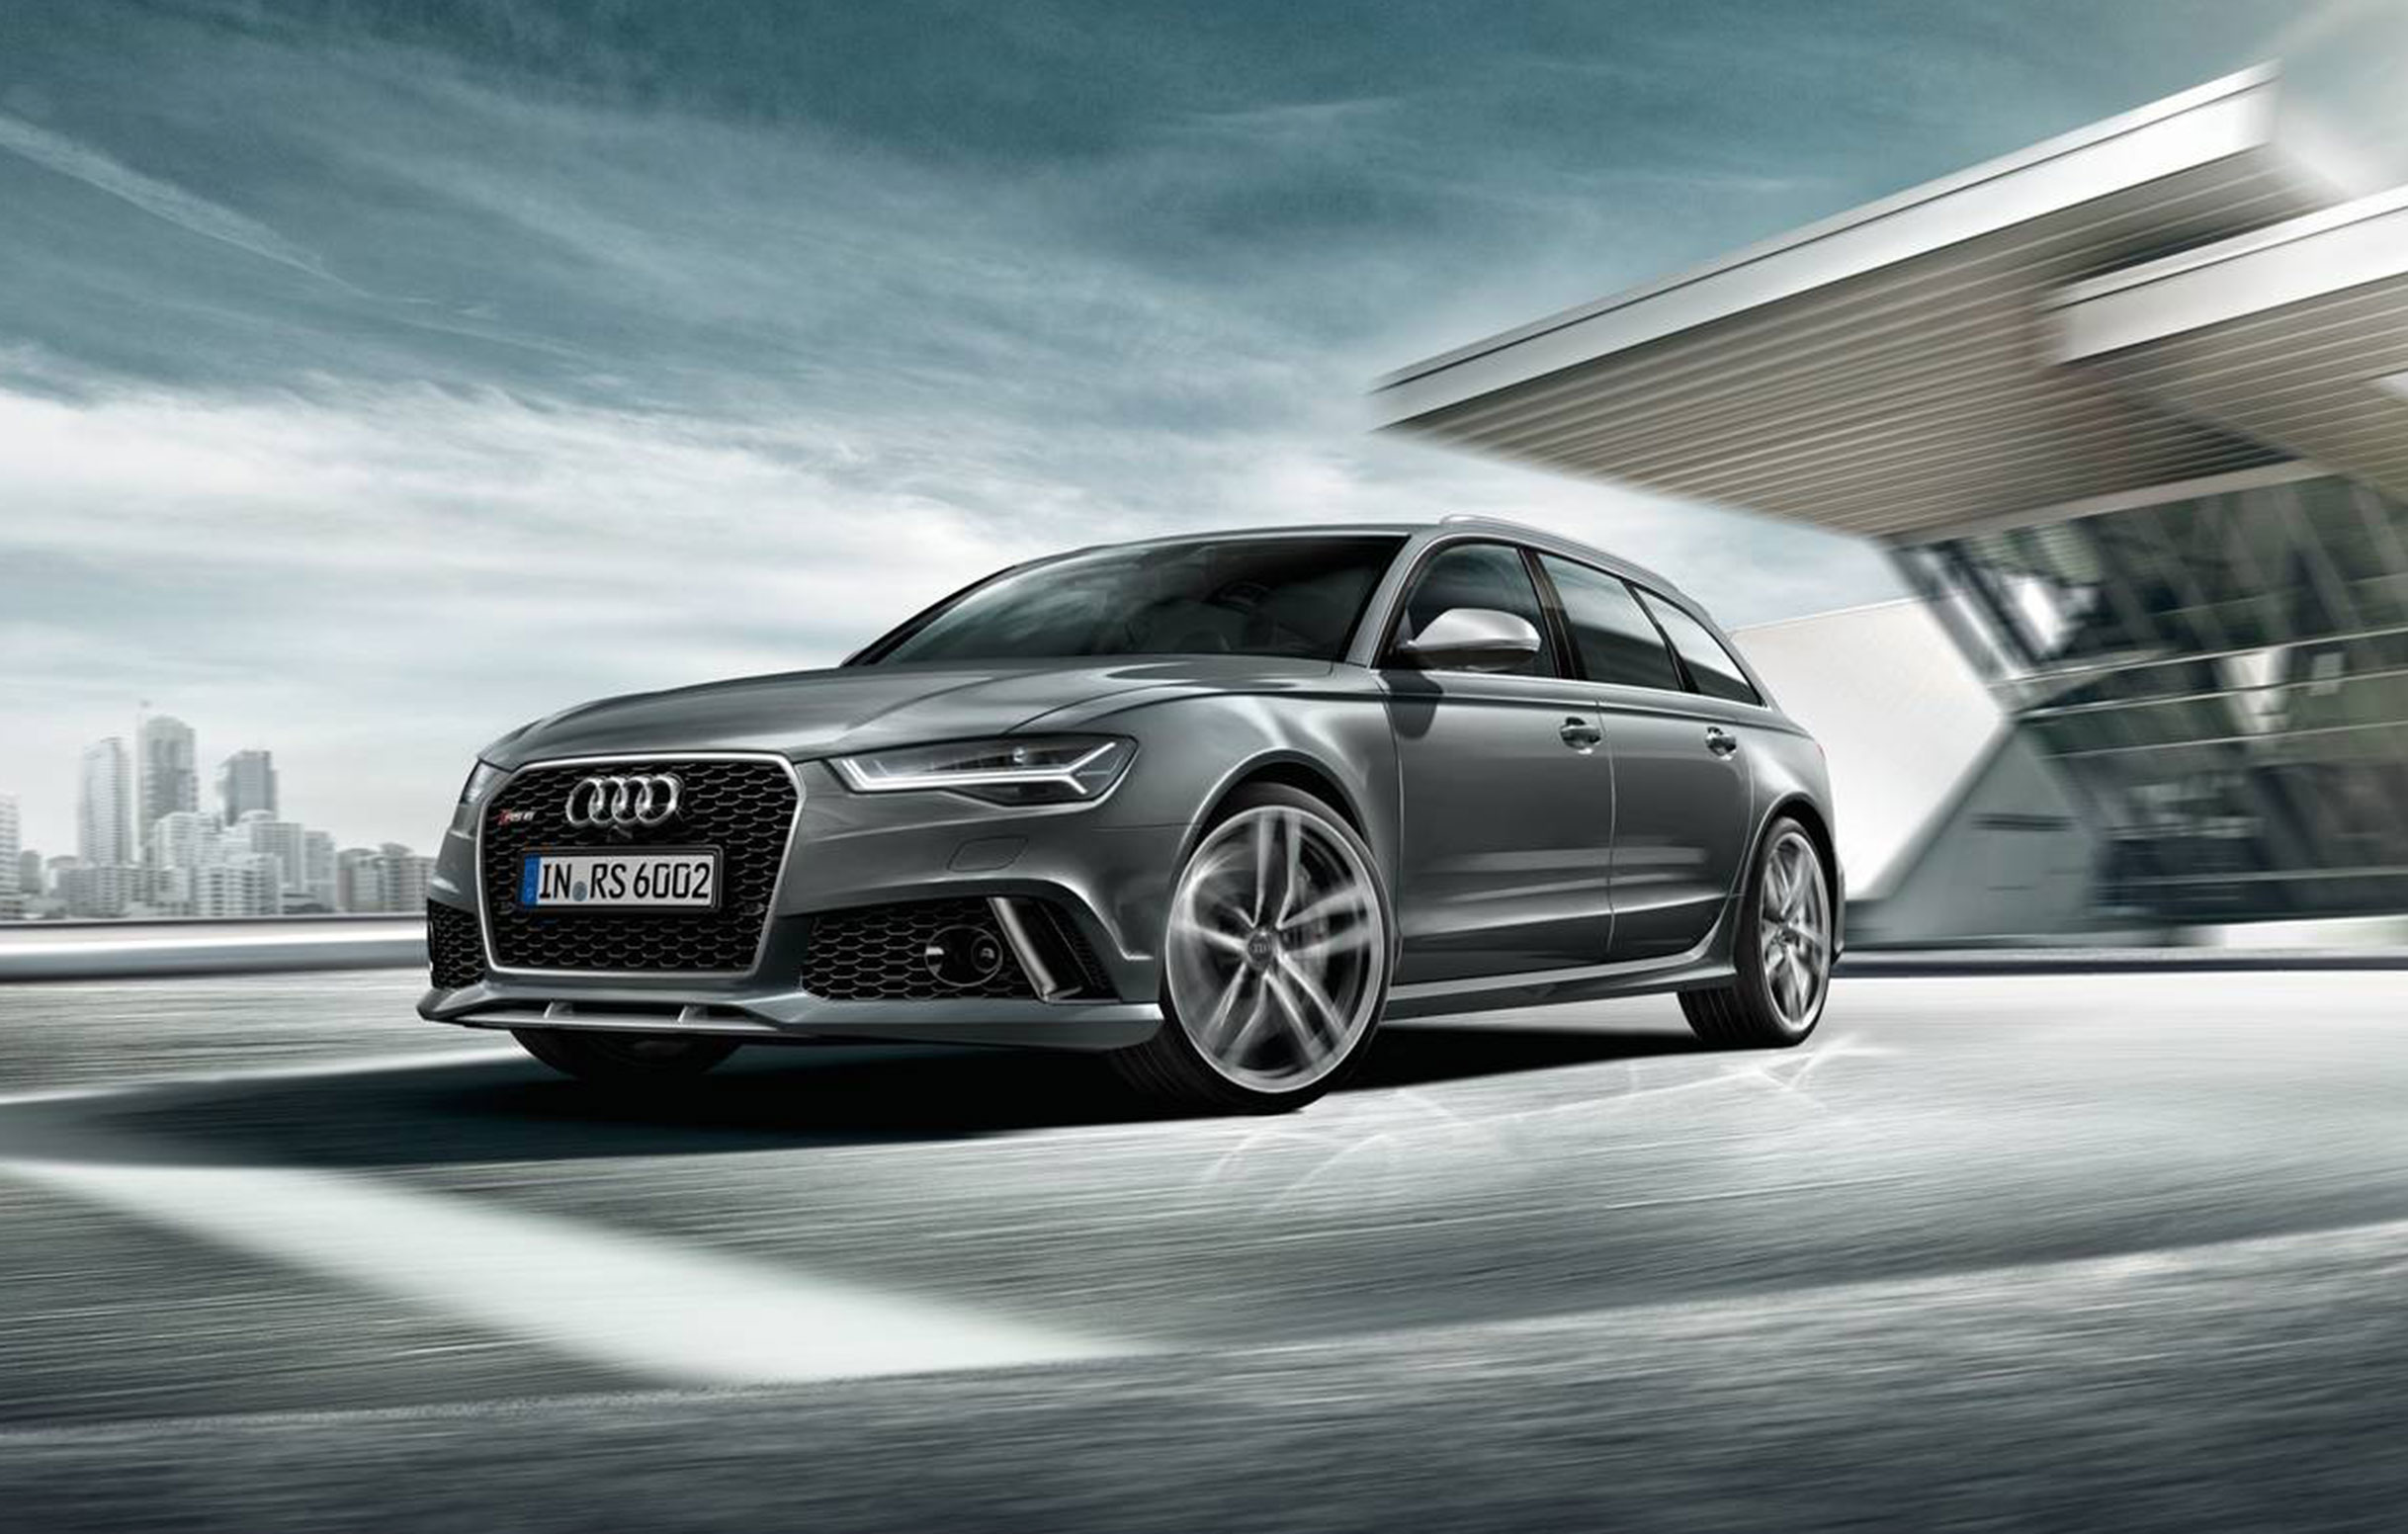 Pictures of audi rs6 #4